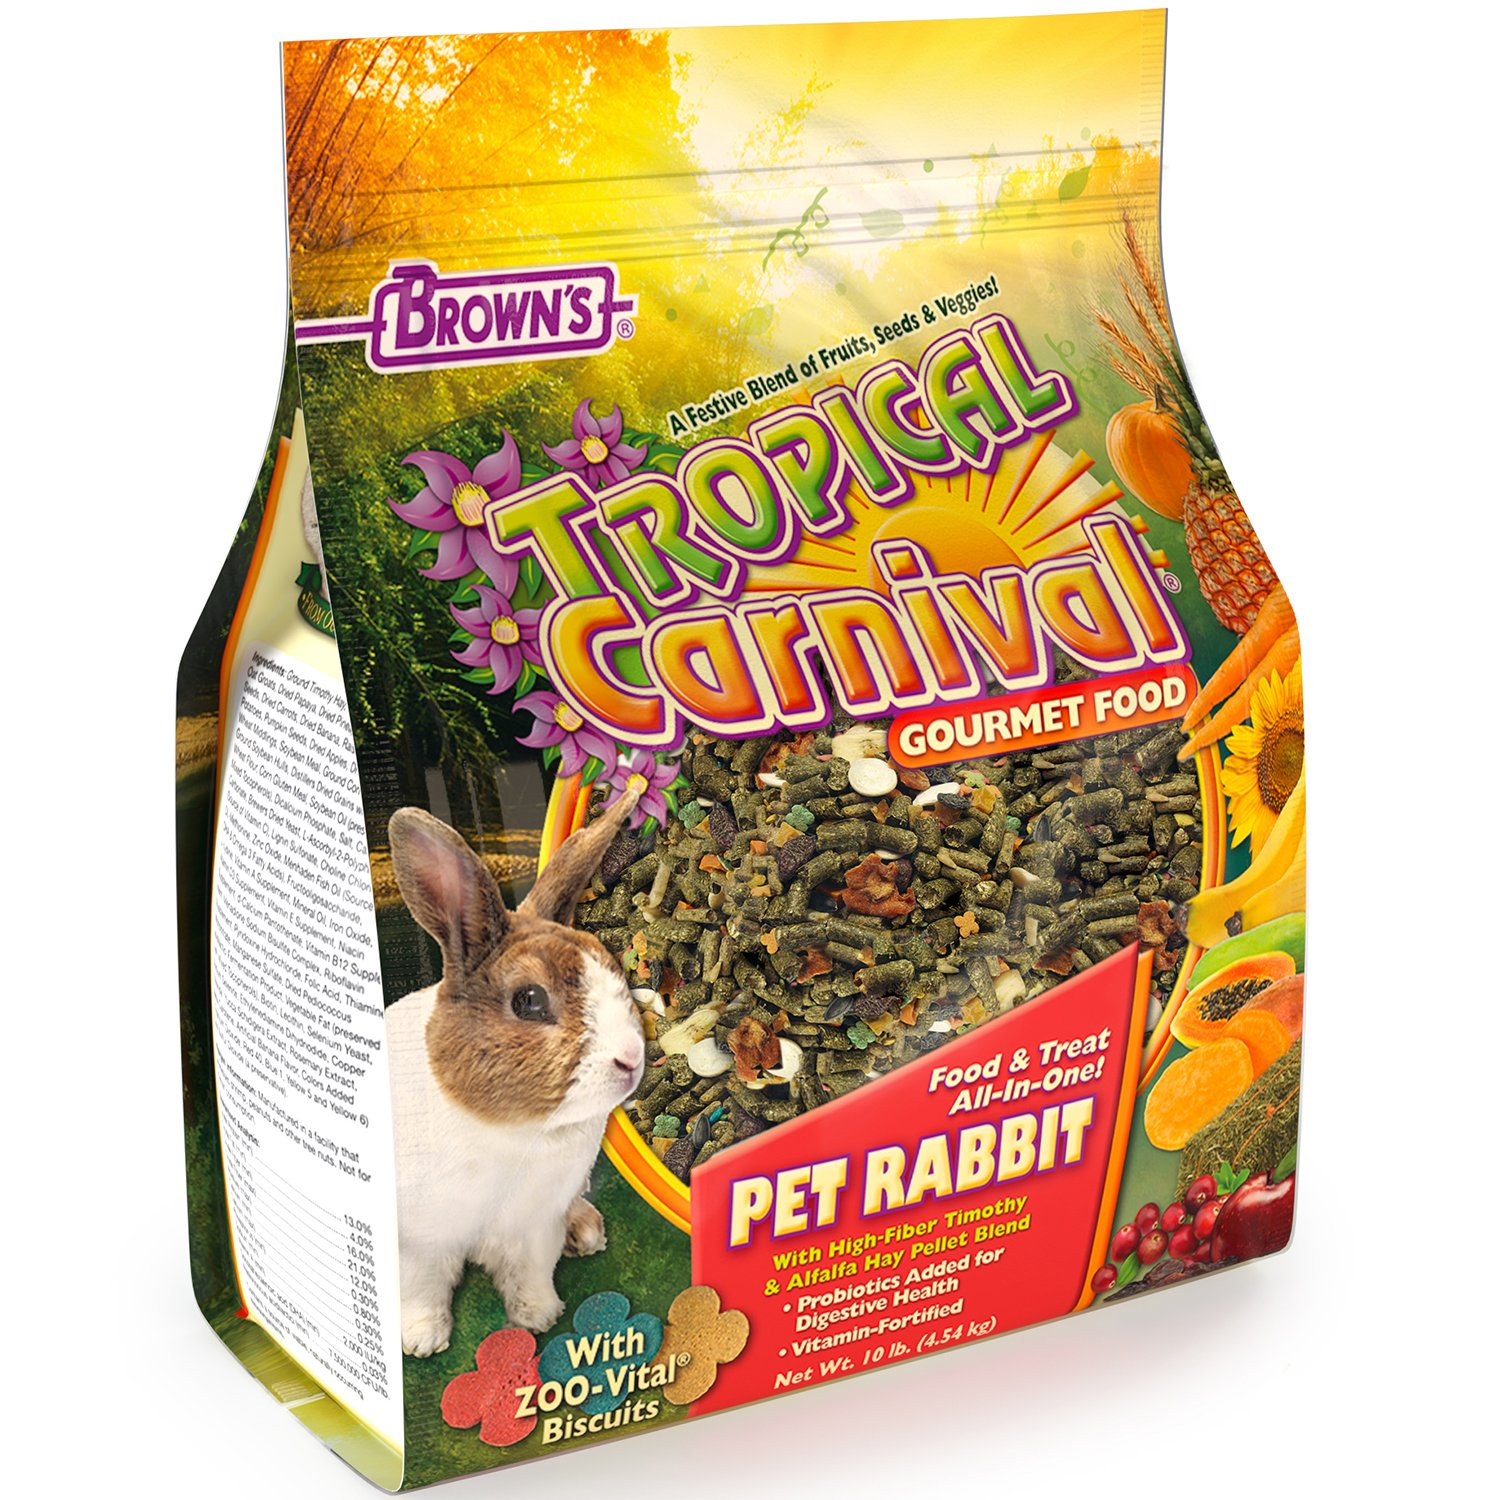 F.M. Brown's Tropical Carnival Gourmet Pet Rabbit Food with High-Fiber Timothy and Alfalfa Hay Pellets - Probiotics for Digestive Health, Vitamin-Nutrient Fortified Daily Diet by Tropical Carnival